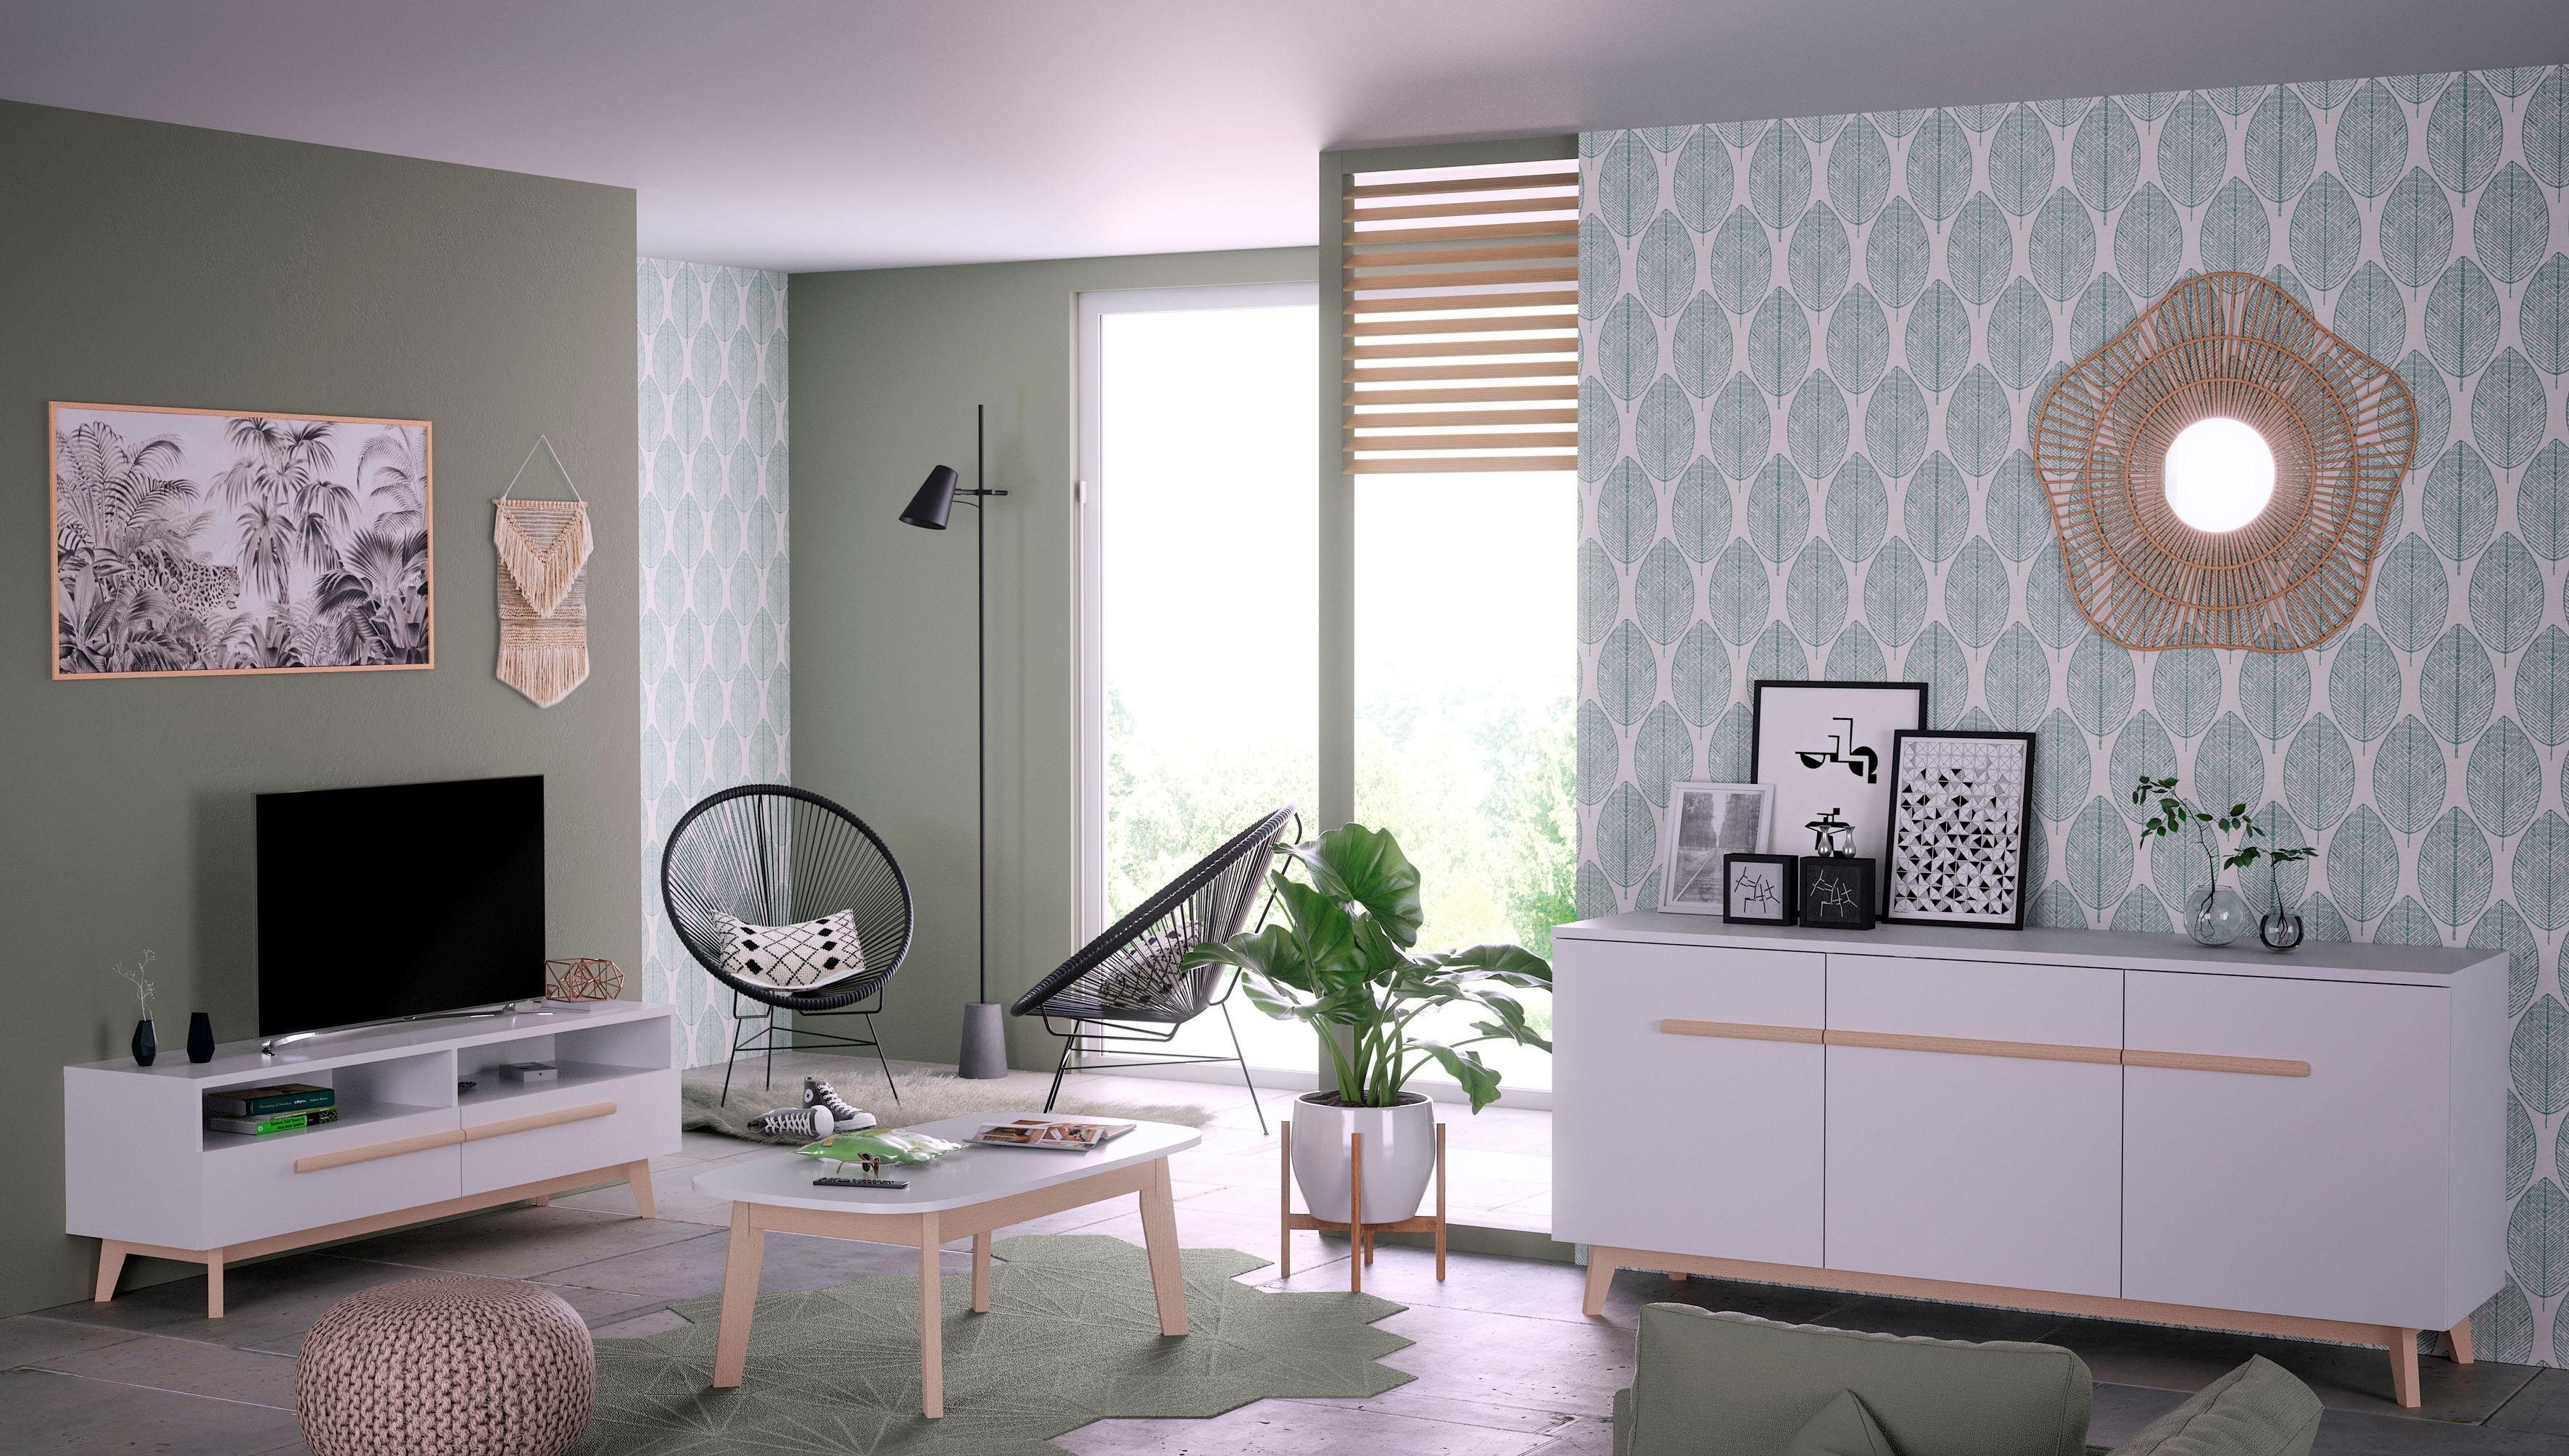 Home affaire Sideboard Naiss